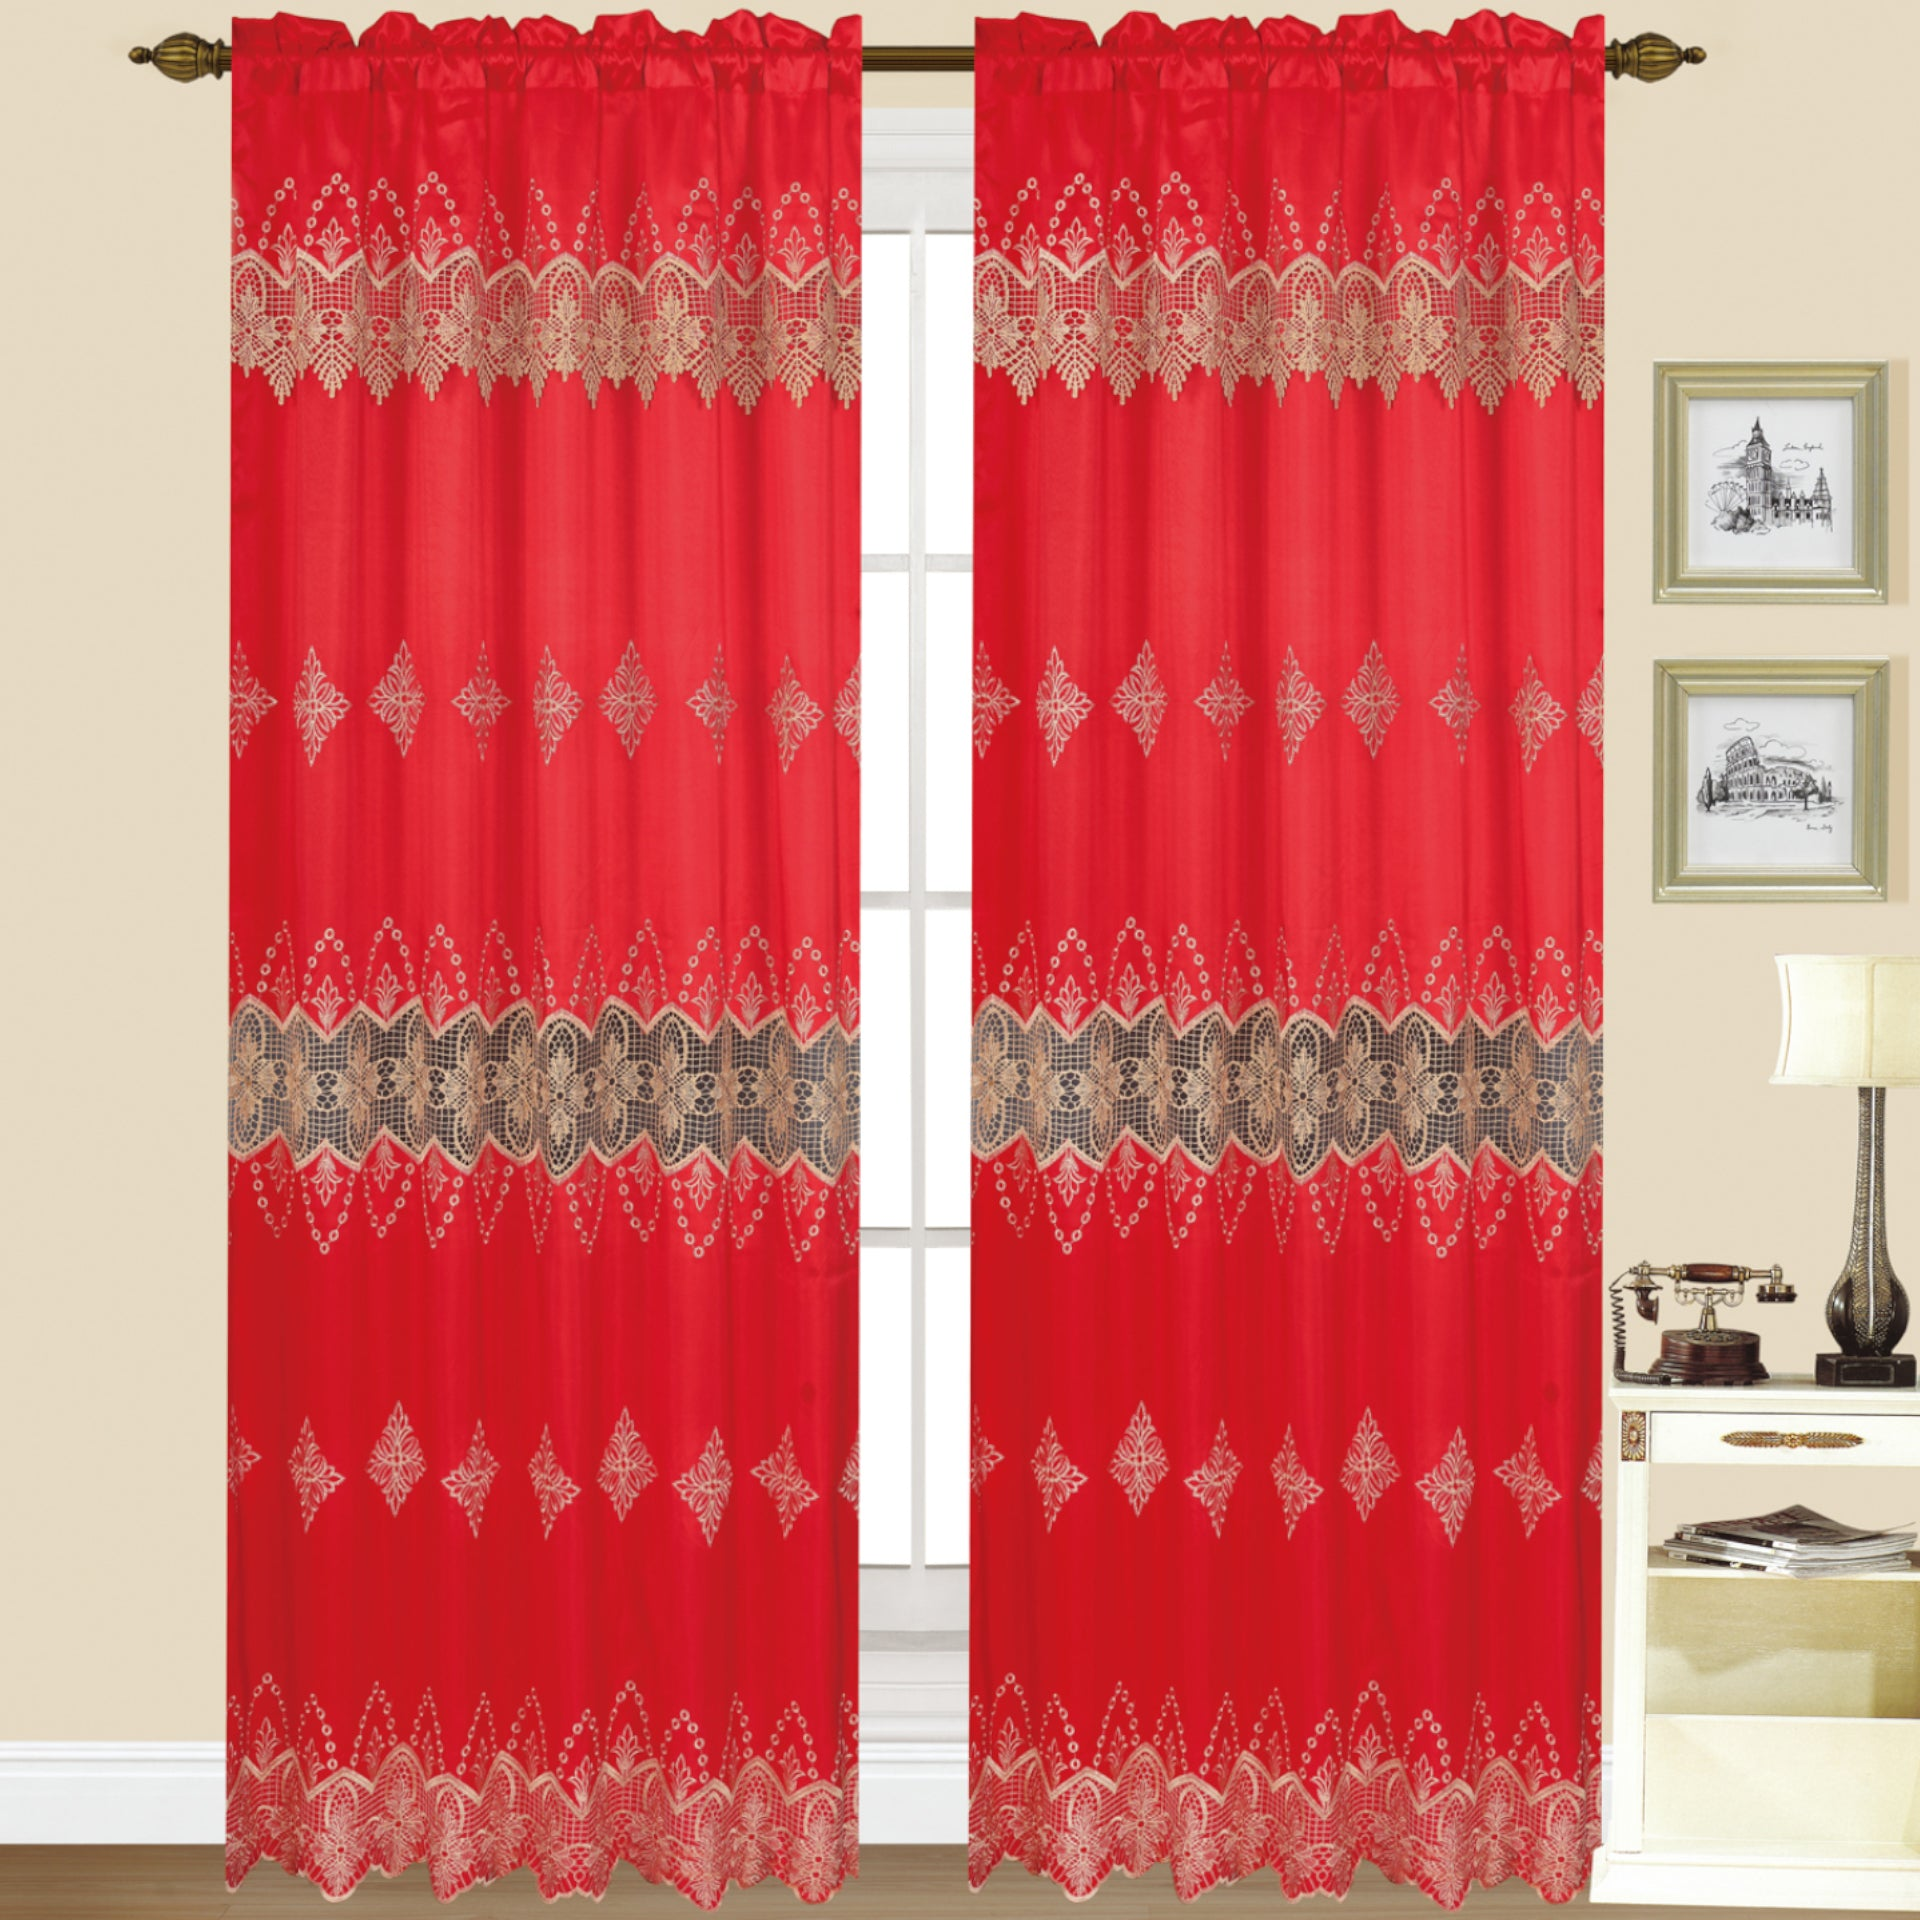 Scarlet - Macrame Panel - Set of Two - Assorted Colors - Glory Home Design